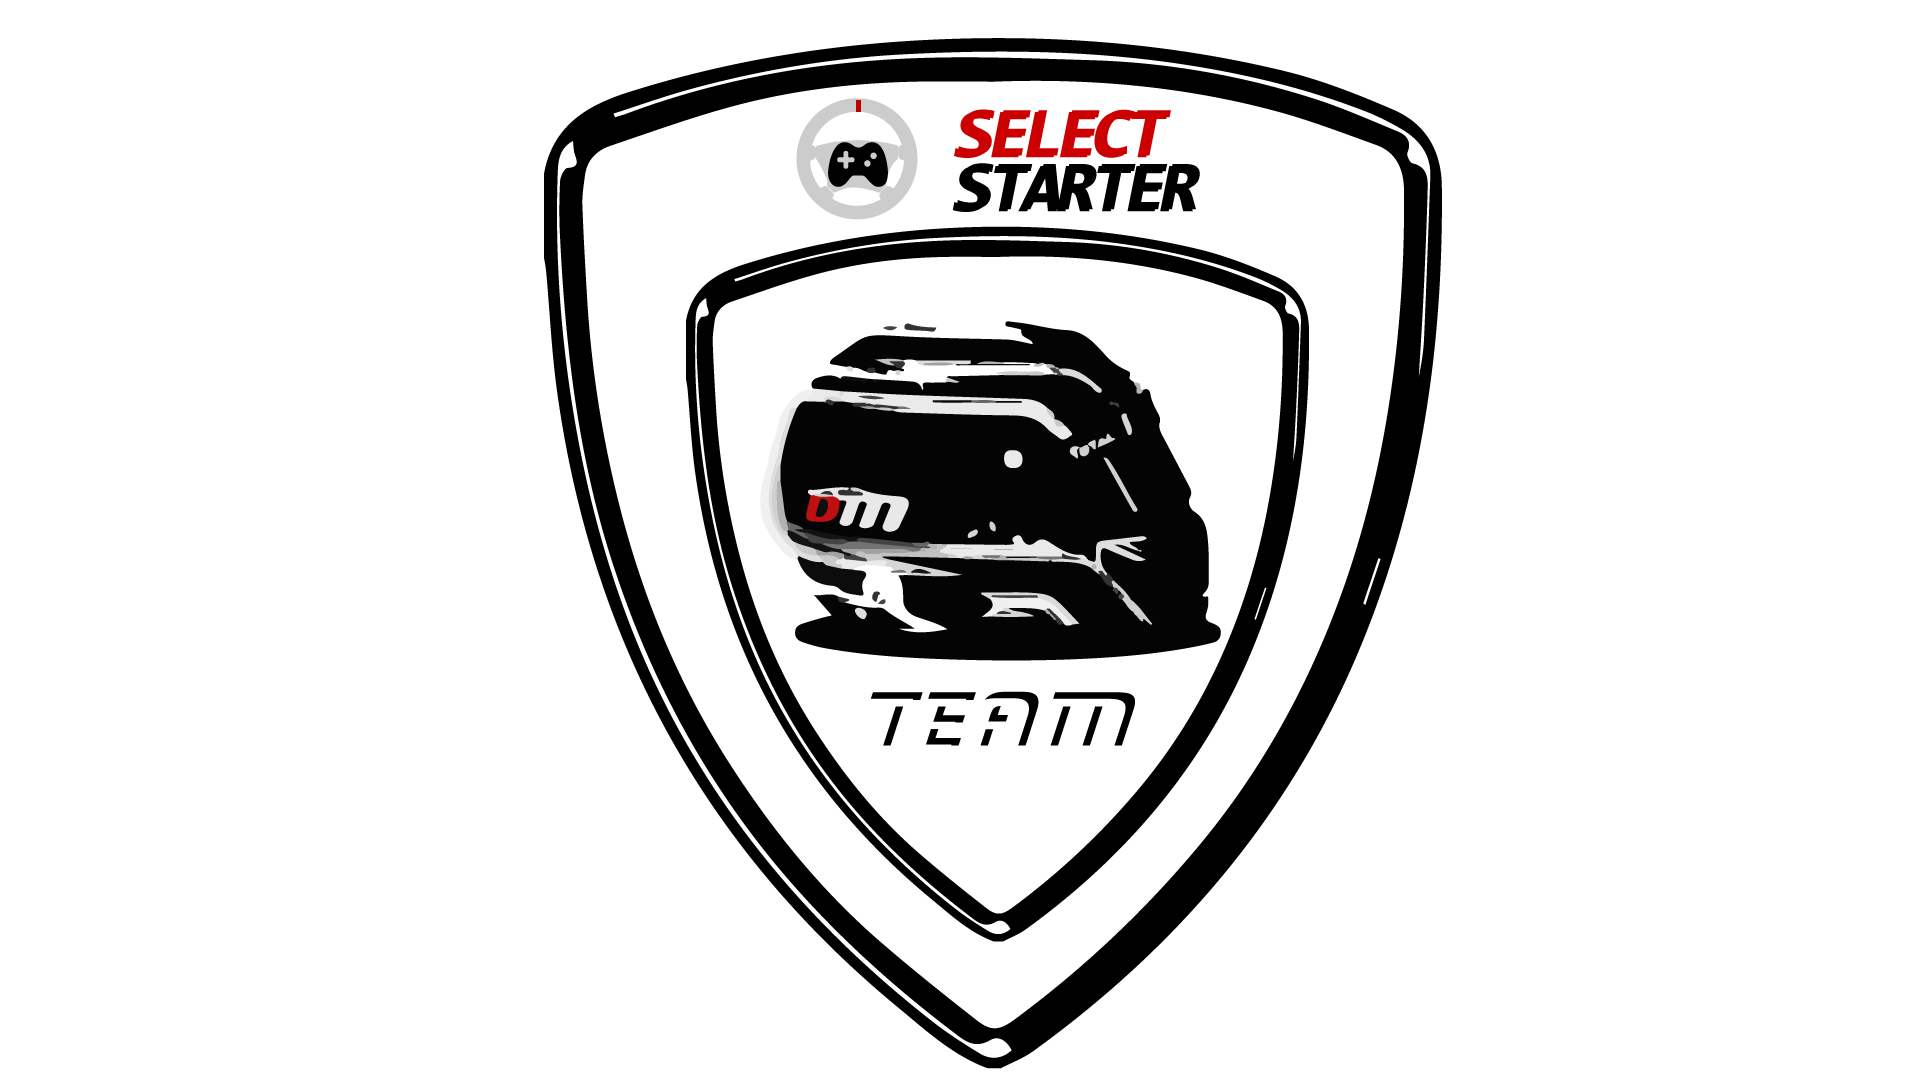 Team DM - Select Starter - Badge écusson